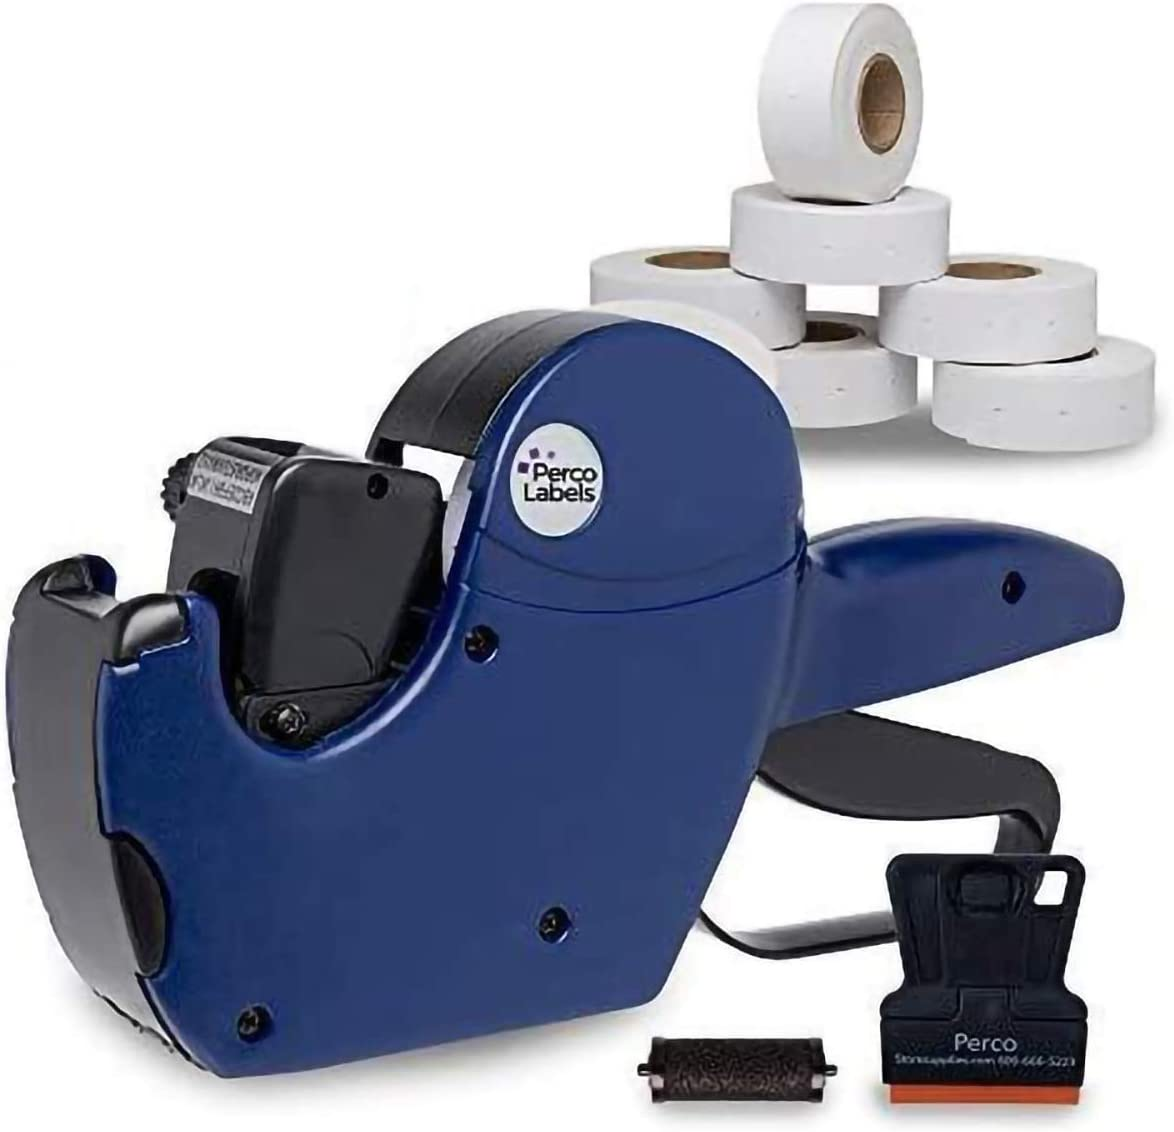 Perco 2 Line Date Gun Labeler Kit: Includes 16 Digits Label Gun, 10, 500 White Labels, Inker Remover Tool, and Pre-Loaded Ink Roll : Office Products